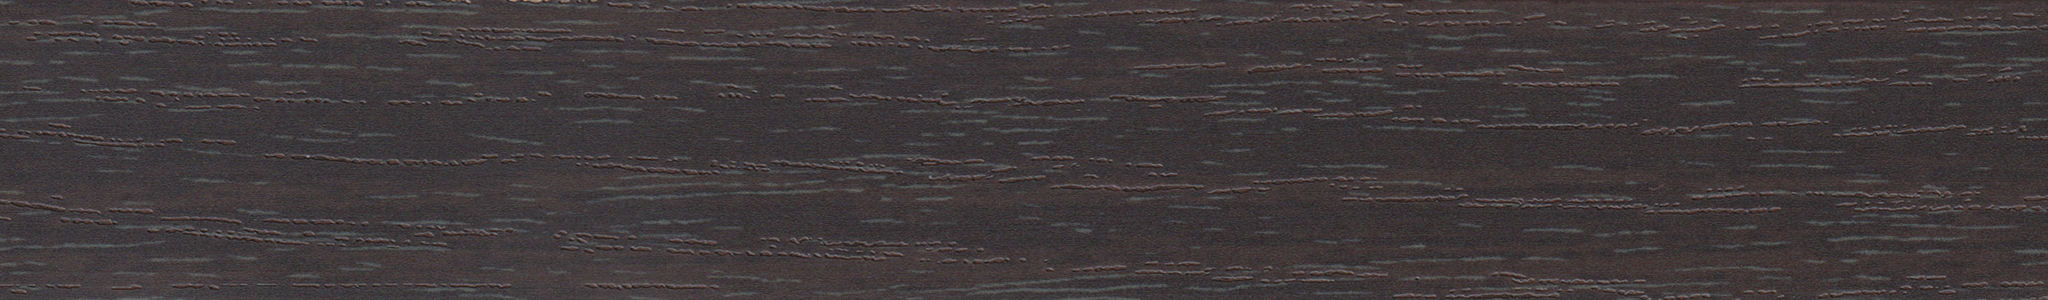 HD 281137 Chant ABS Wenge Graine